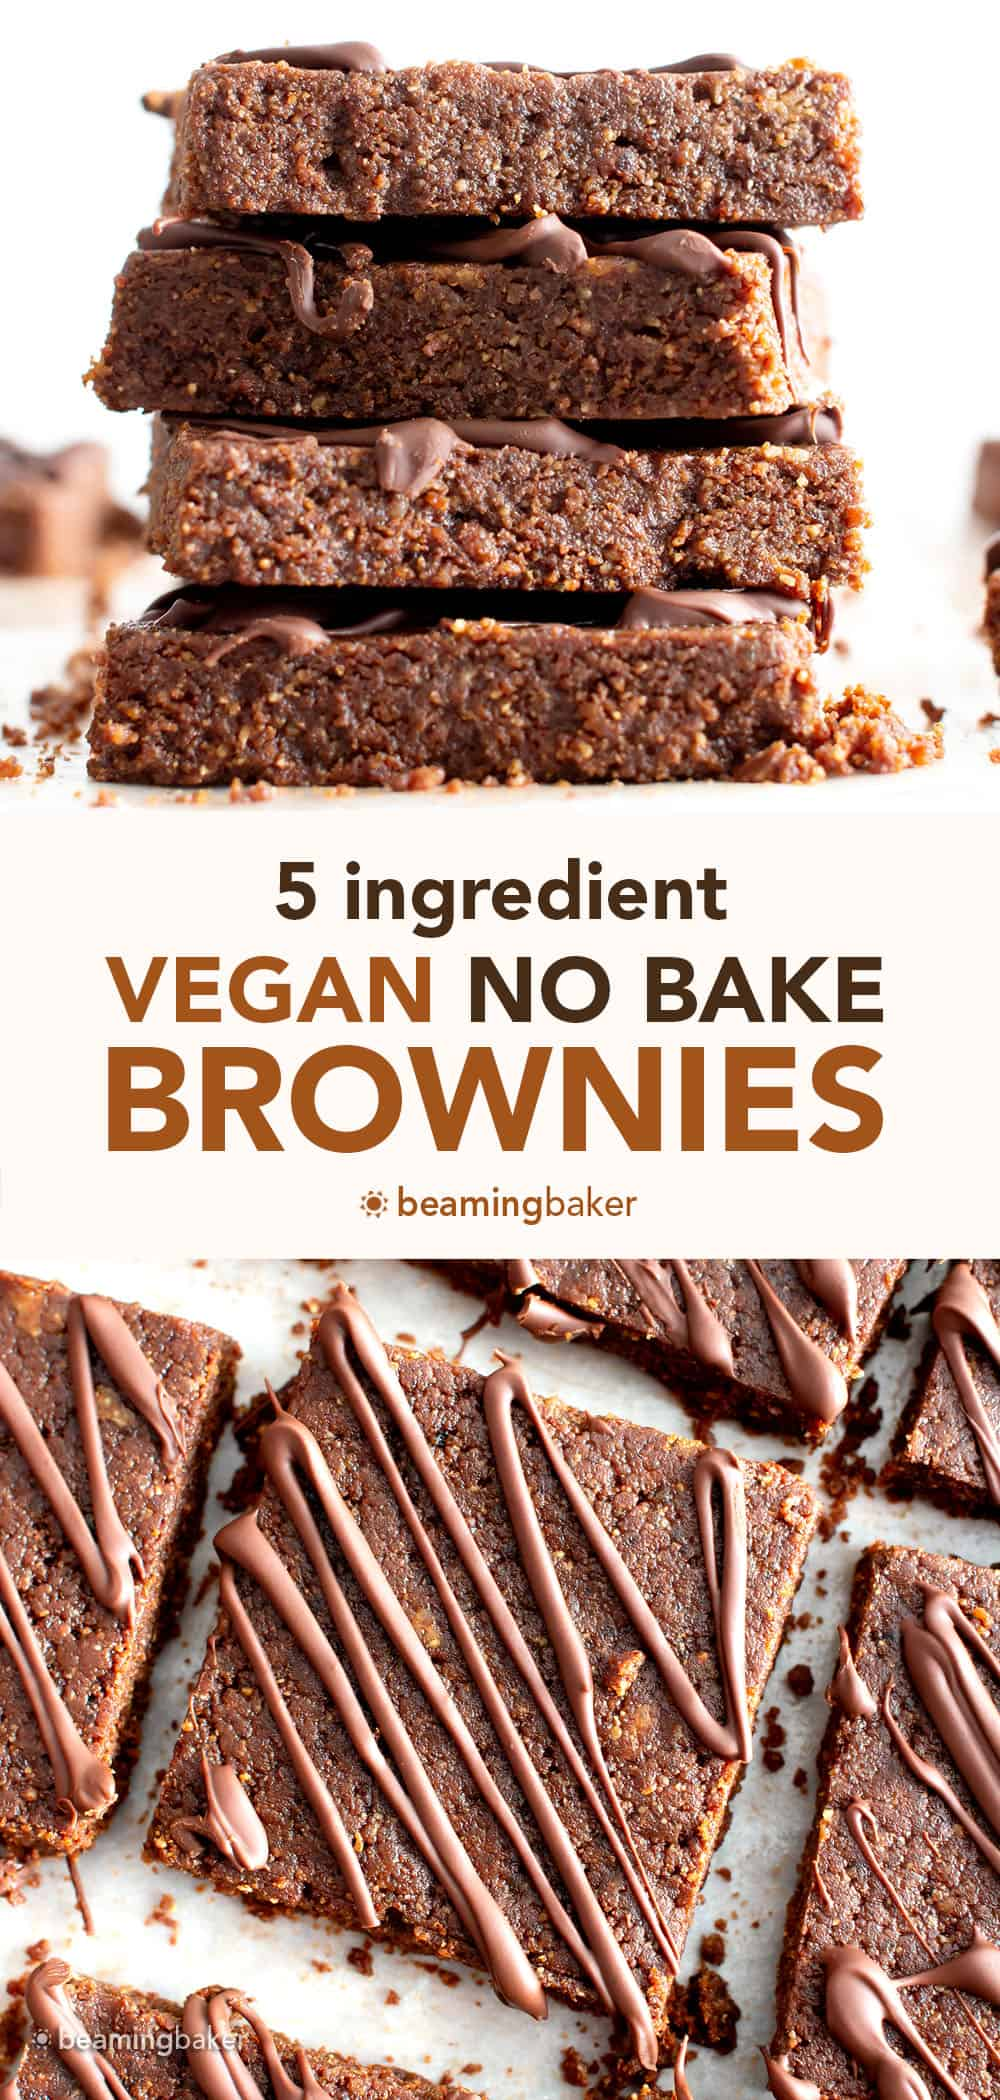 No Bake Vegan Brownies: this 5 ingredient no bake brownies recipe yields deliciously soft 'n dense no bake vegan brownies that'll satisfy your chocolate cravings! #NoBake #Brownies #Vegan | Recipe at BeamingBaker.com